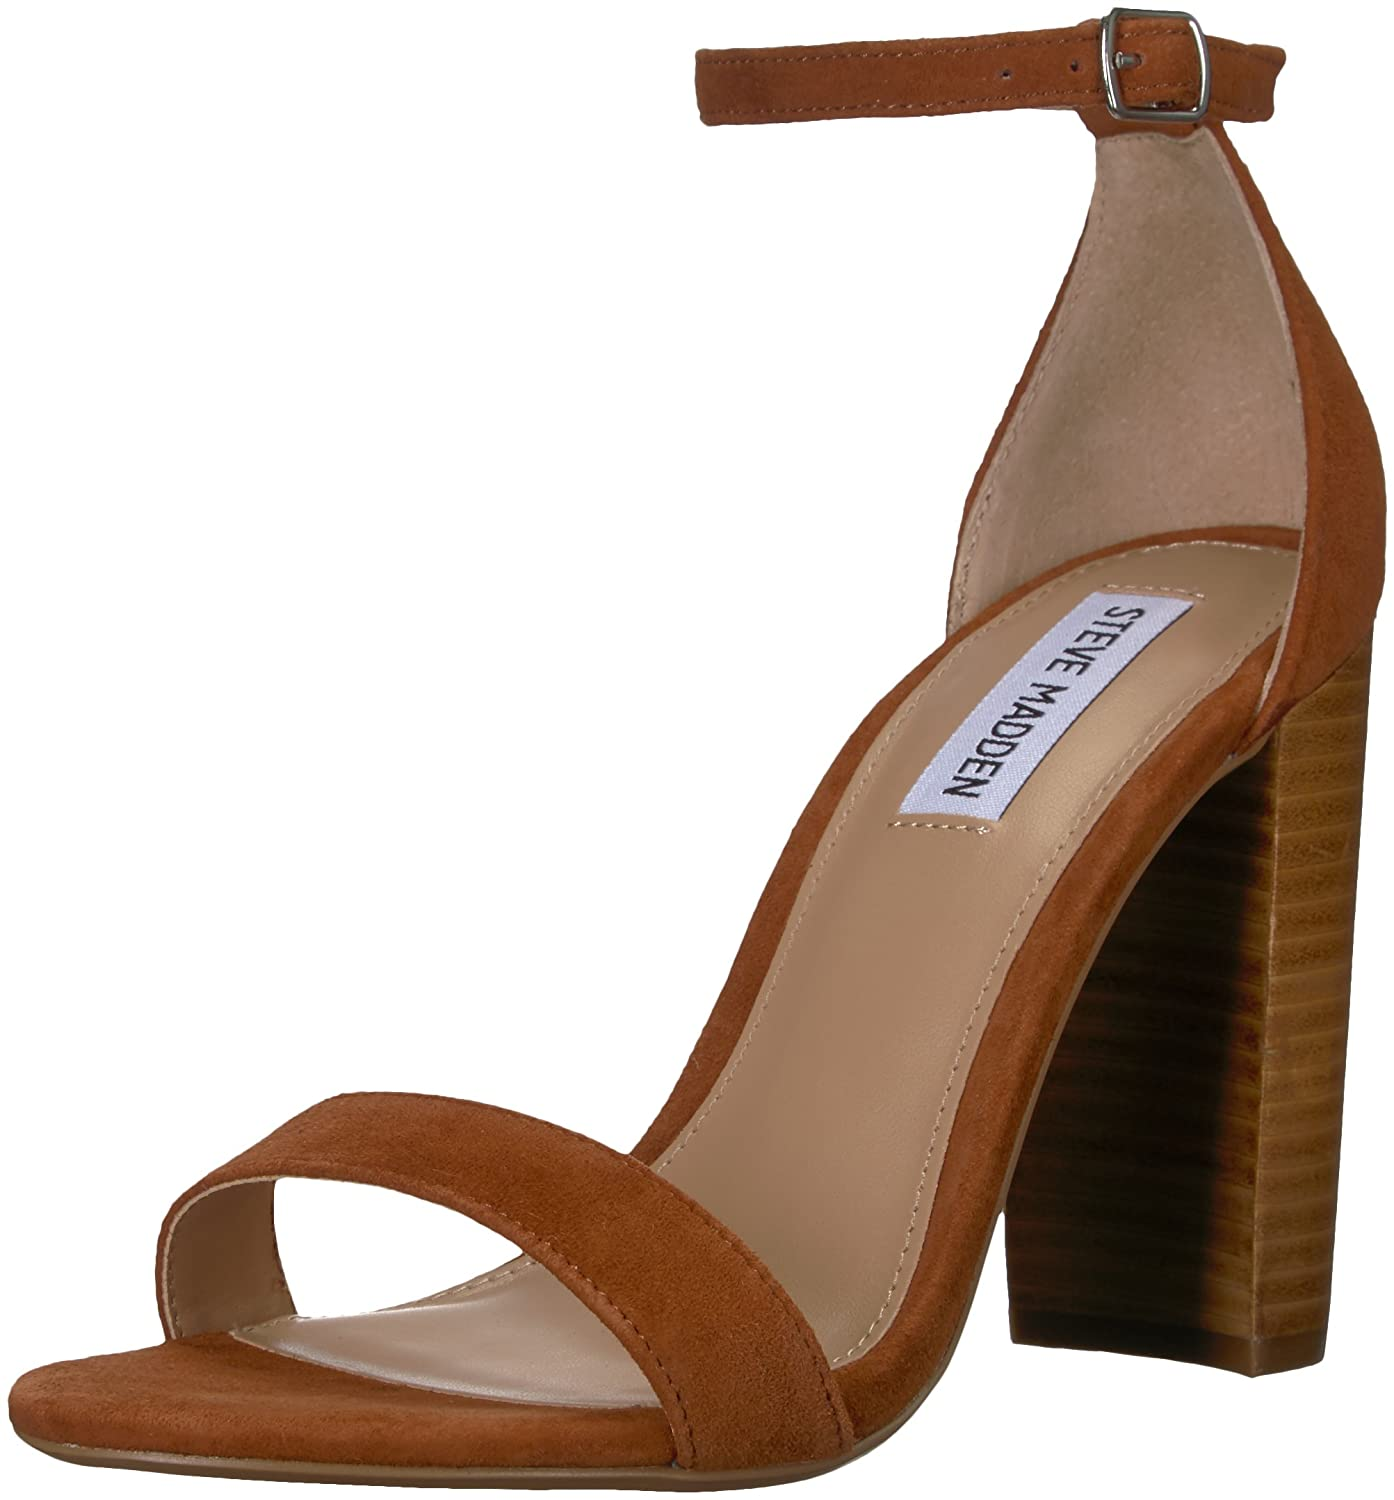 Steve Madden Women's Carrson Dress Sandal B07BLJH9SN 7 B(M) US|Chestnut Multi